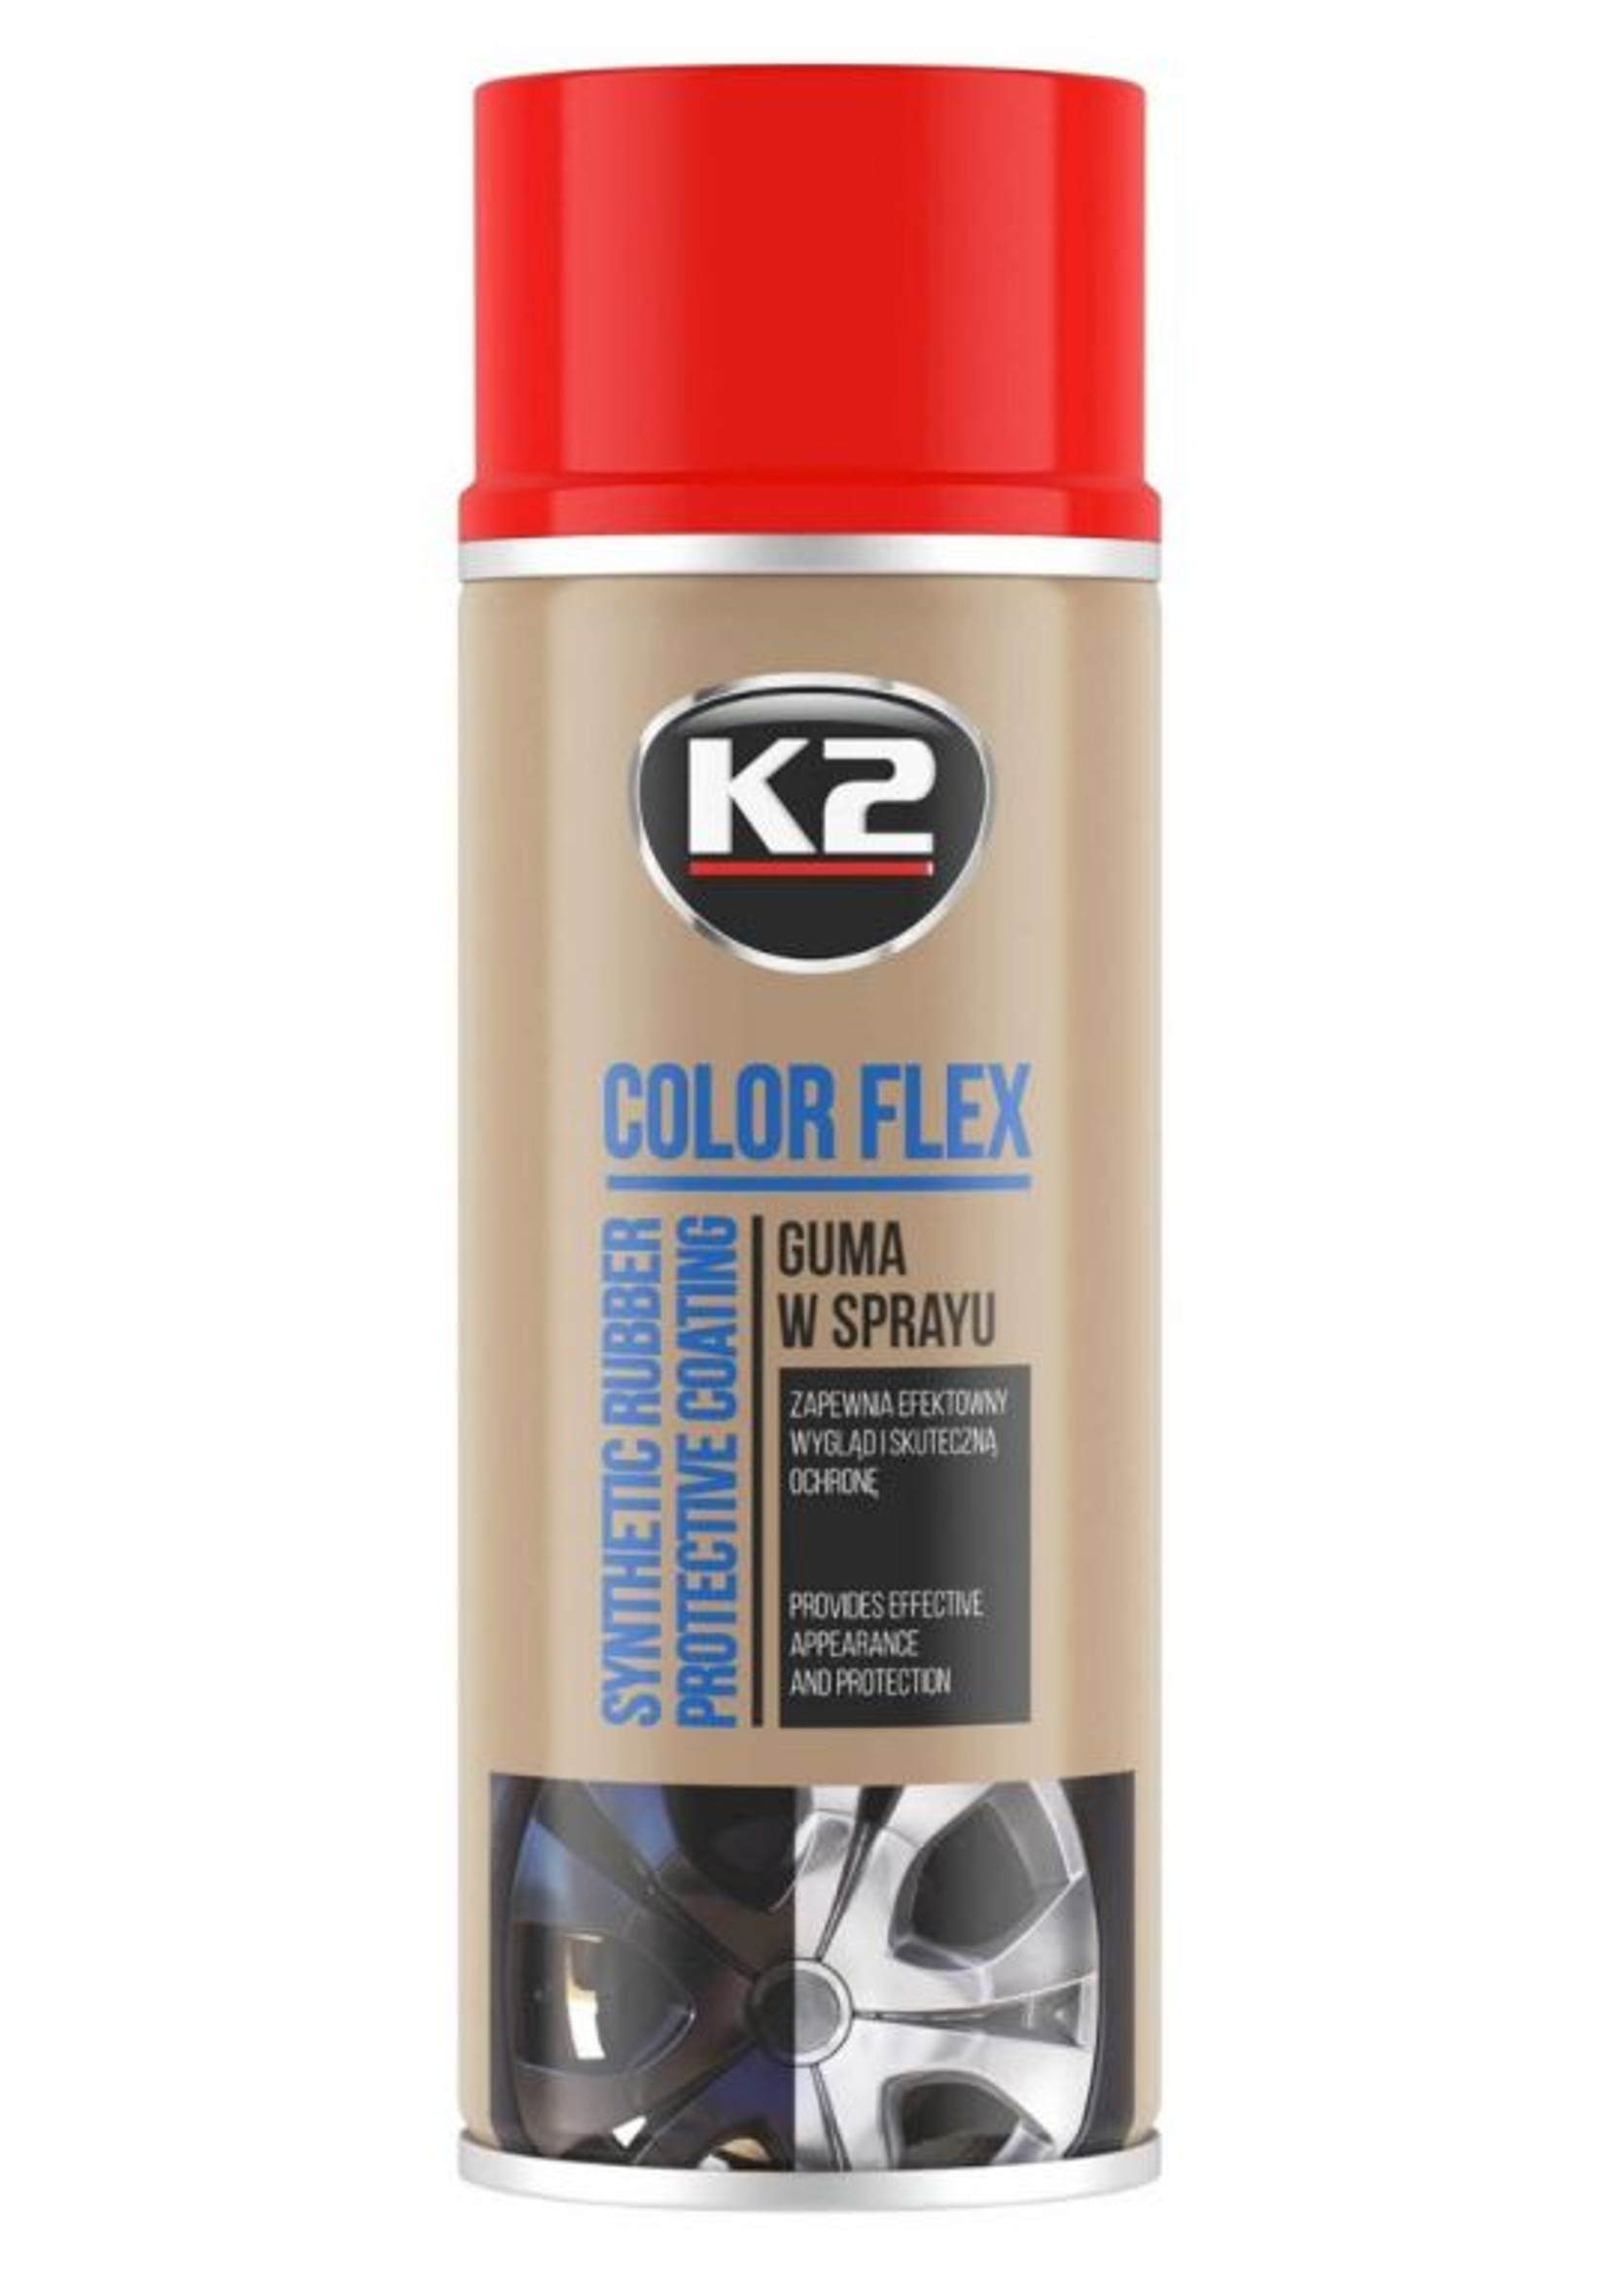 K2 Color Flex Czerwony 400ml Guma w Sprayu